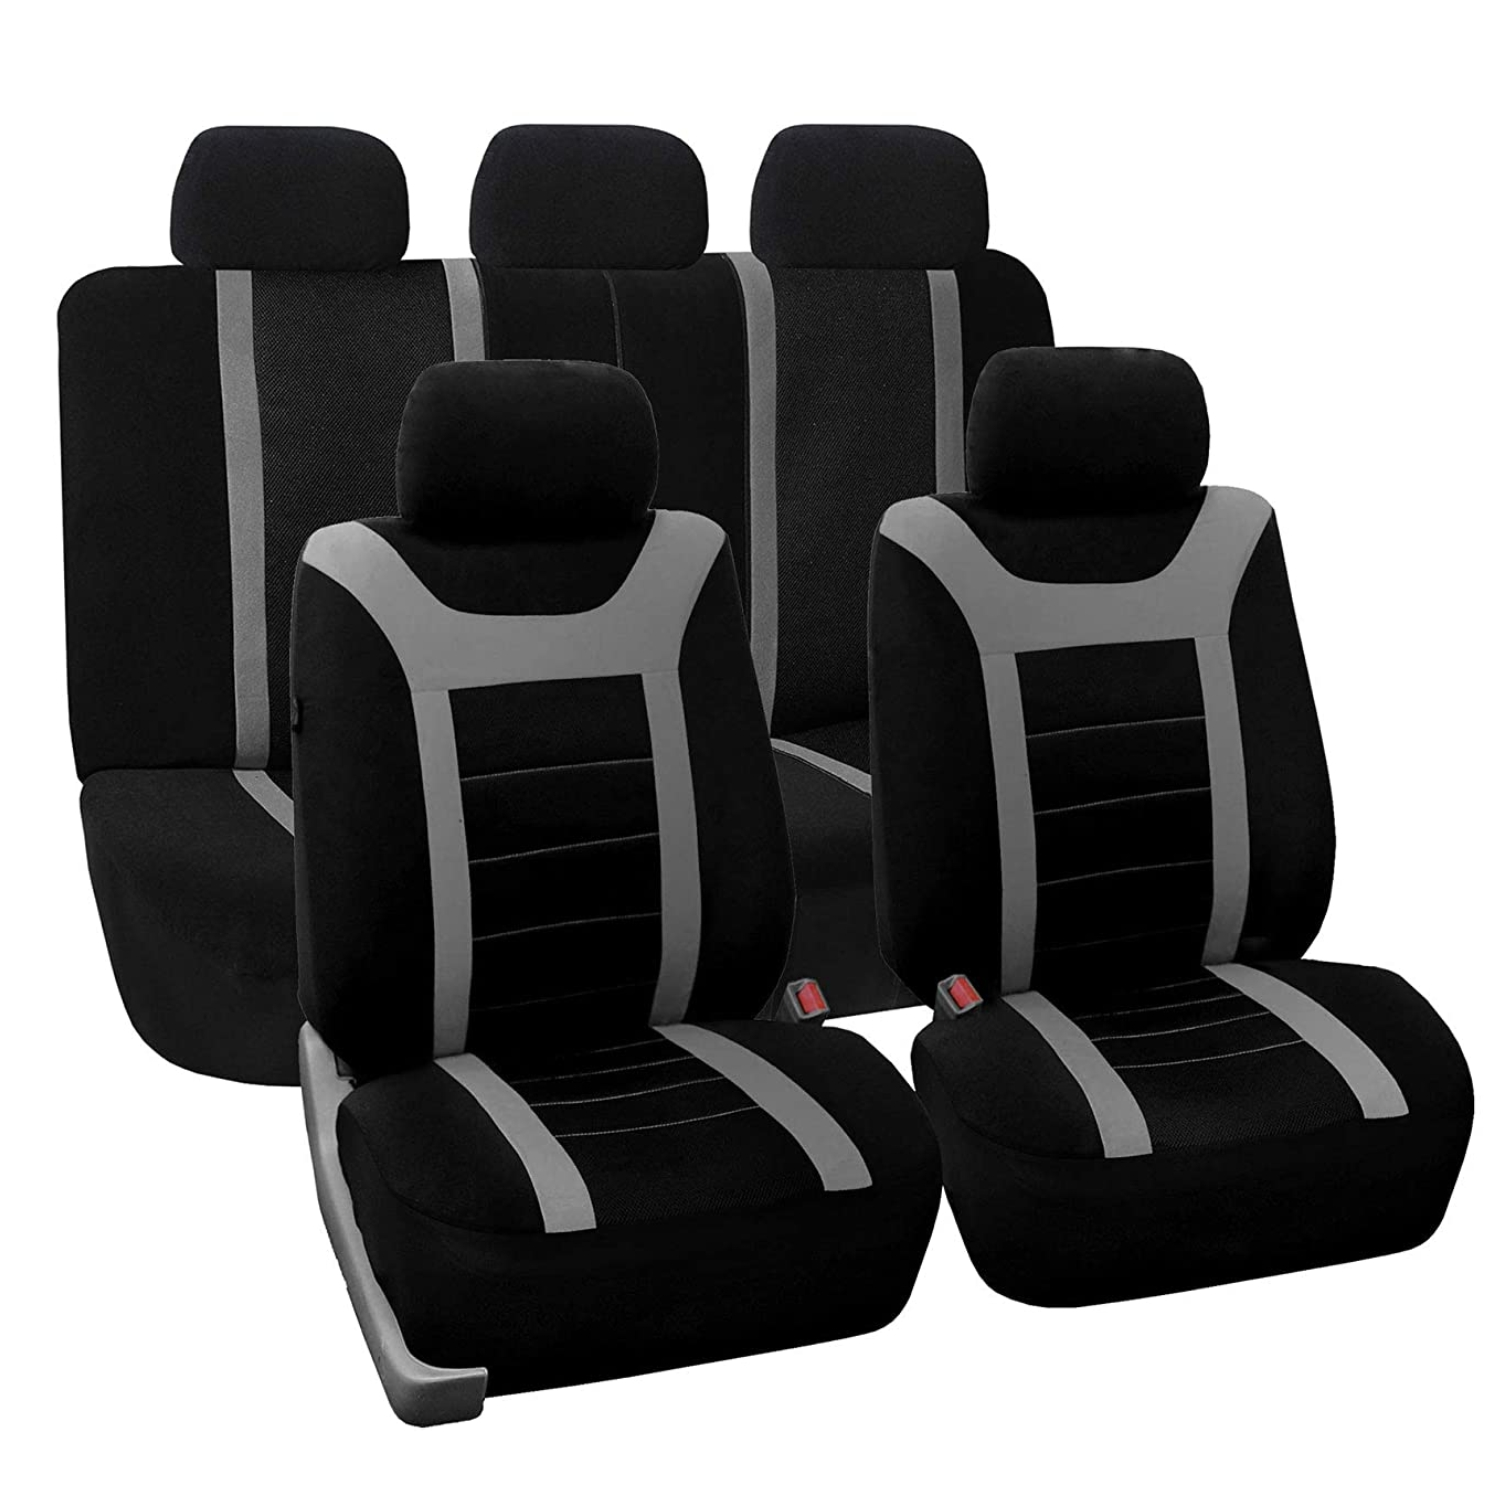 SB201 - Car Seat Cover set protector with SIDE AIRBAG BLACK / GREY